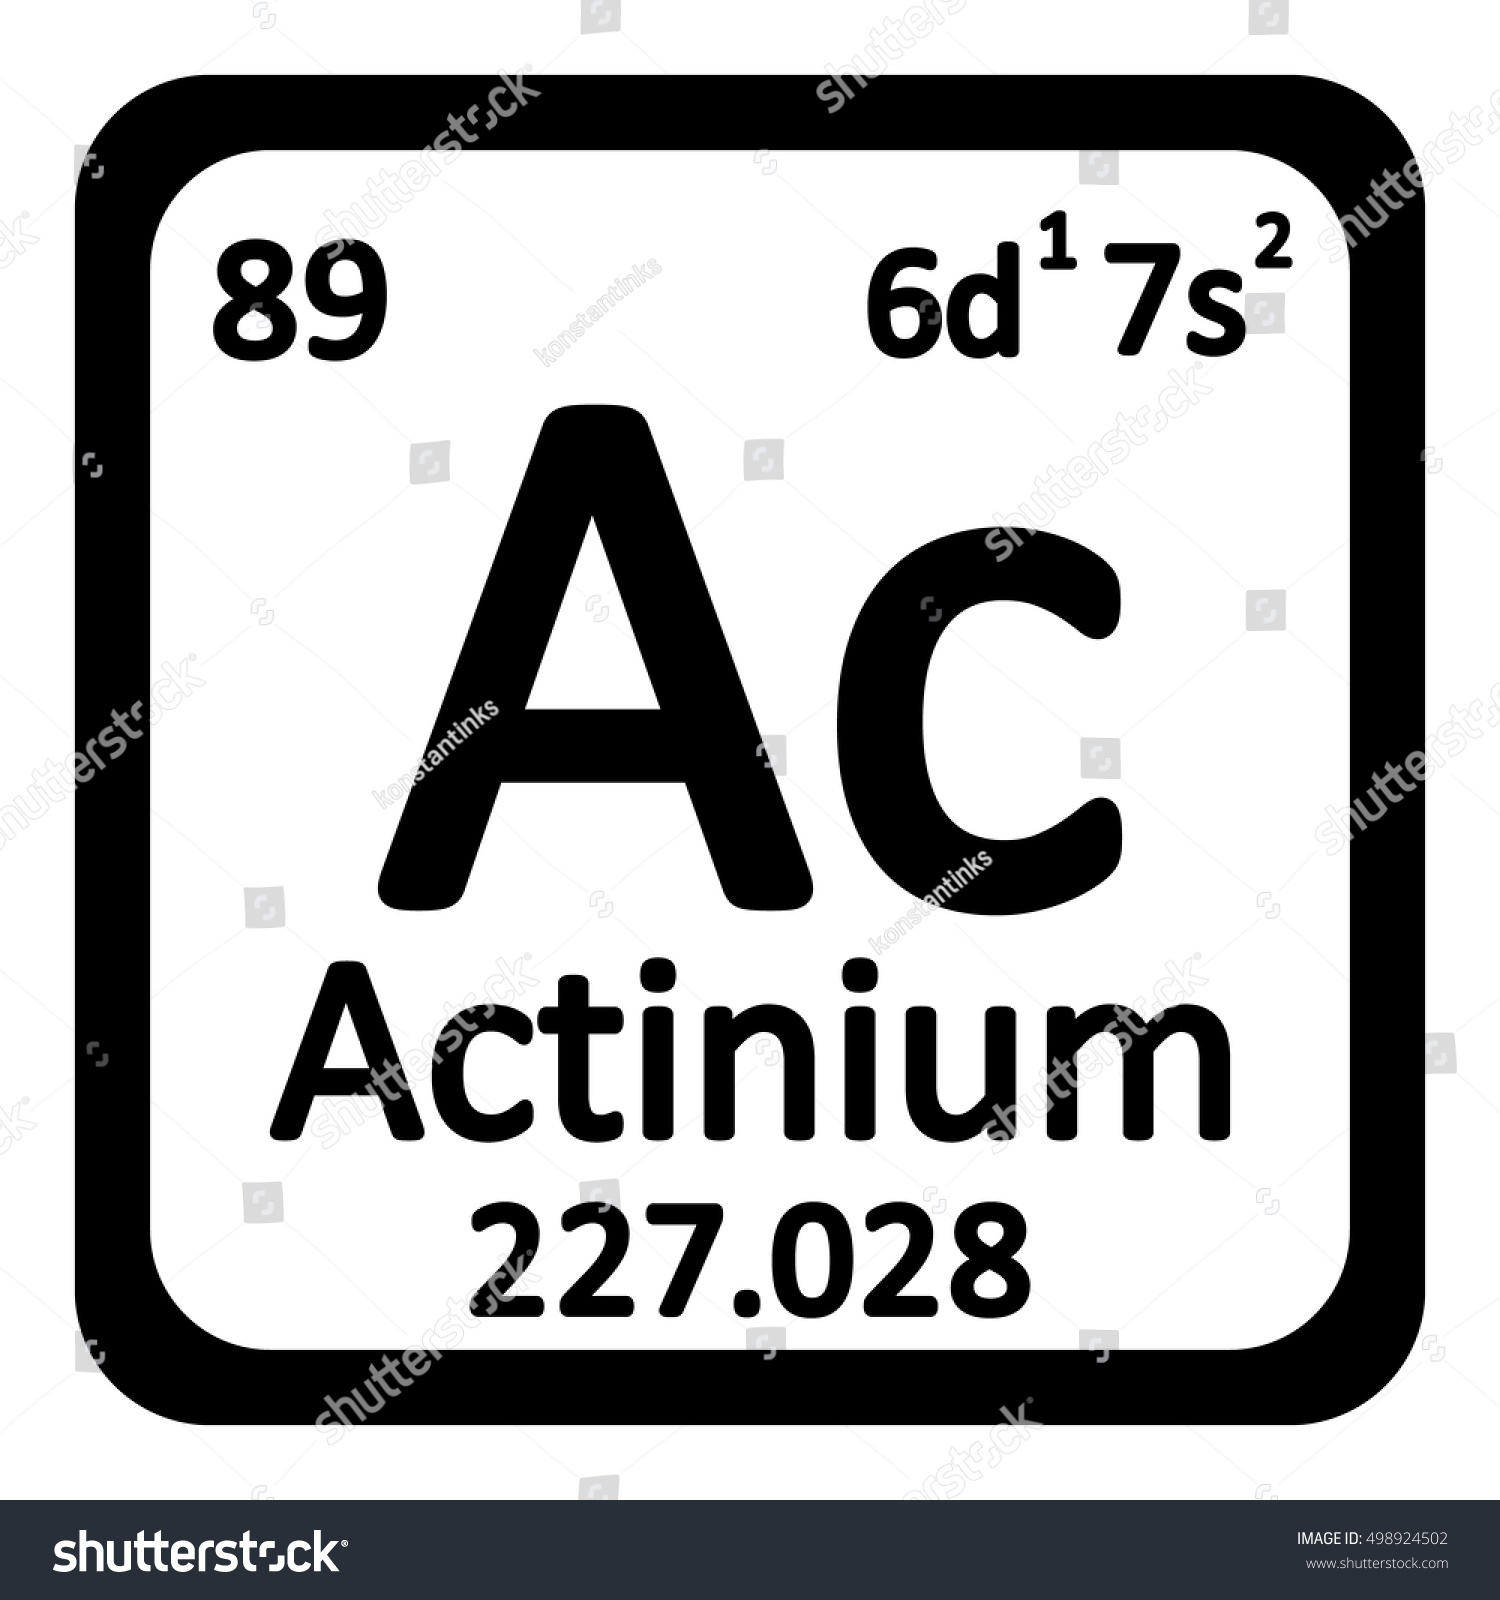 Periodic table element actinium icon on stock vector 498924502 periodic table element actinium icon on white background vector illustration gamestrikefo Image collections